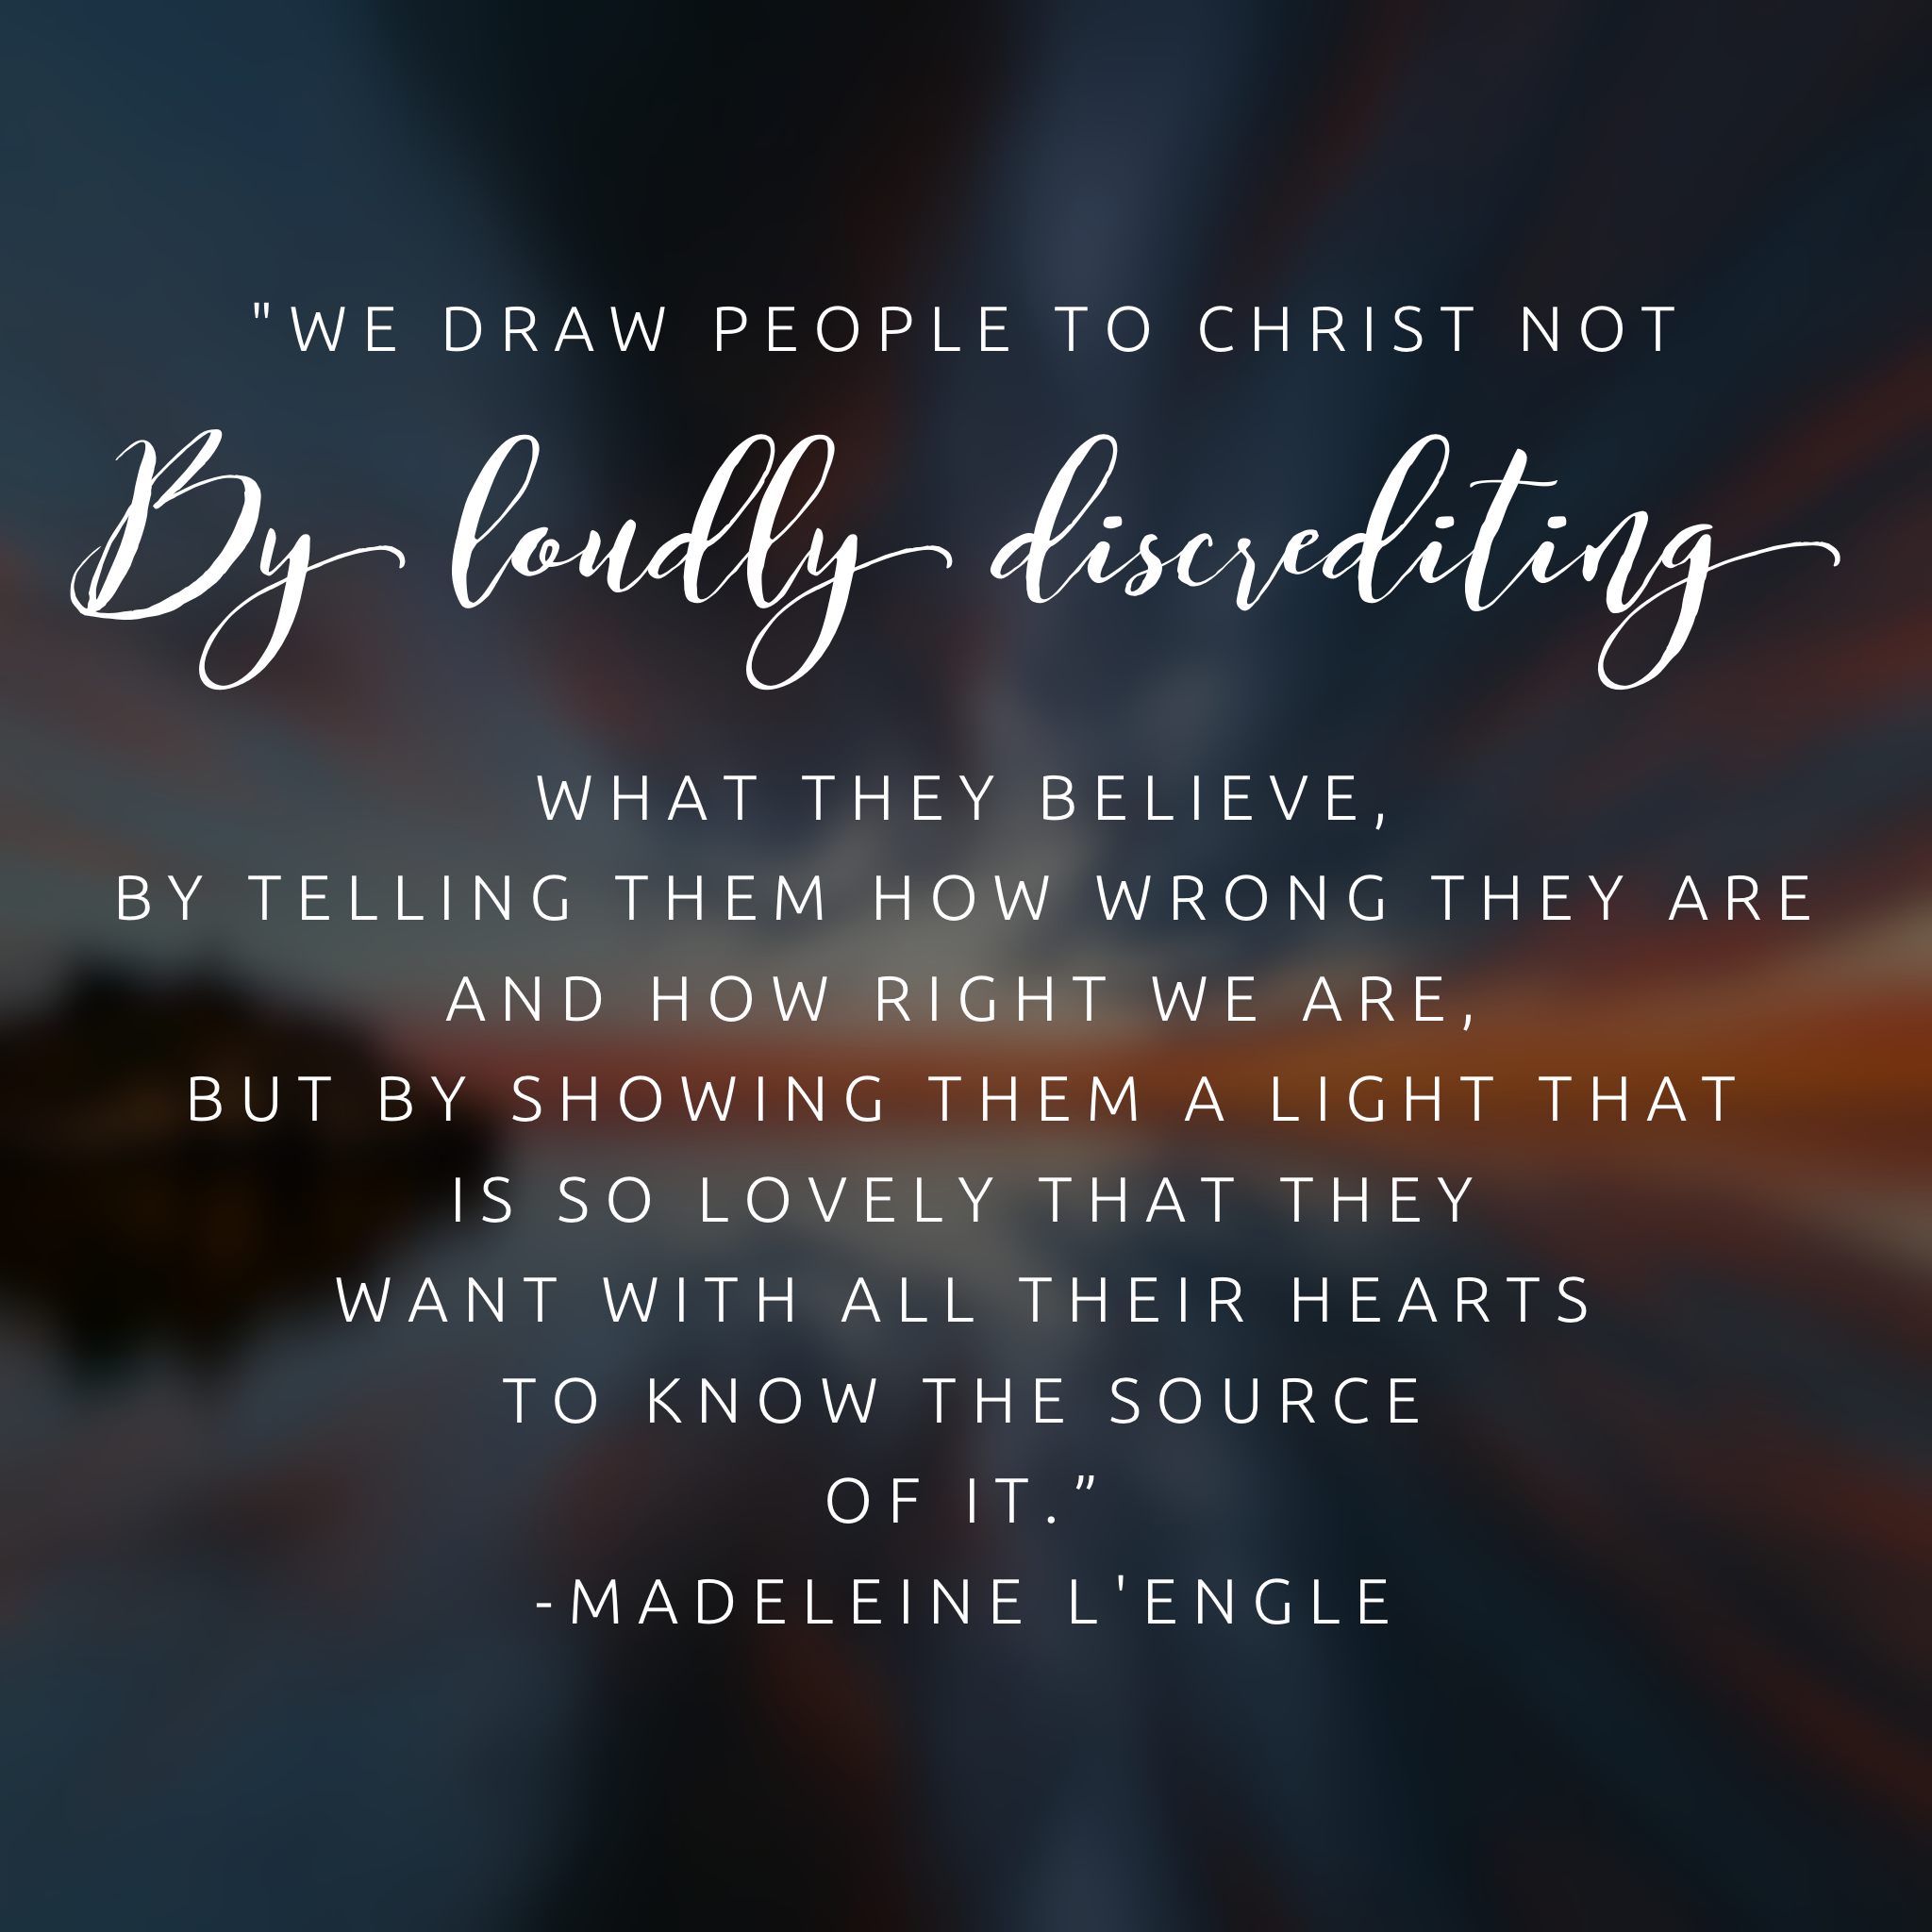 A Light So Lovely, the Spiritual Legacy of Madeleine L'Engle